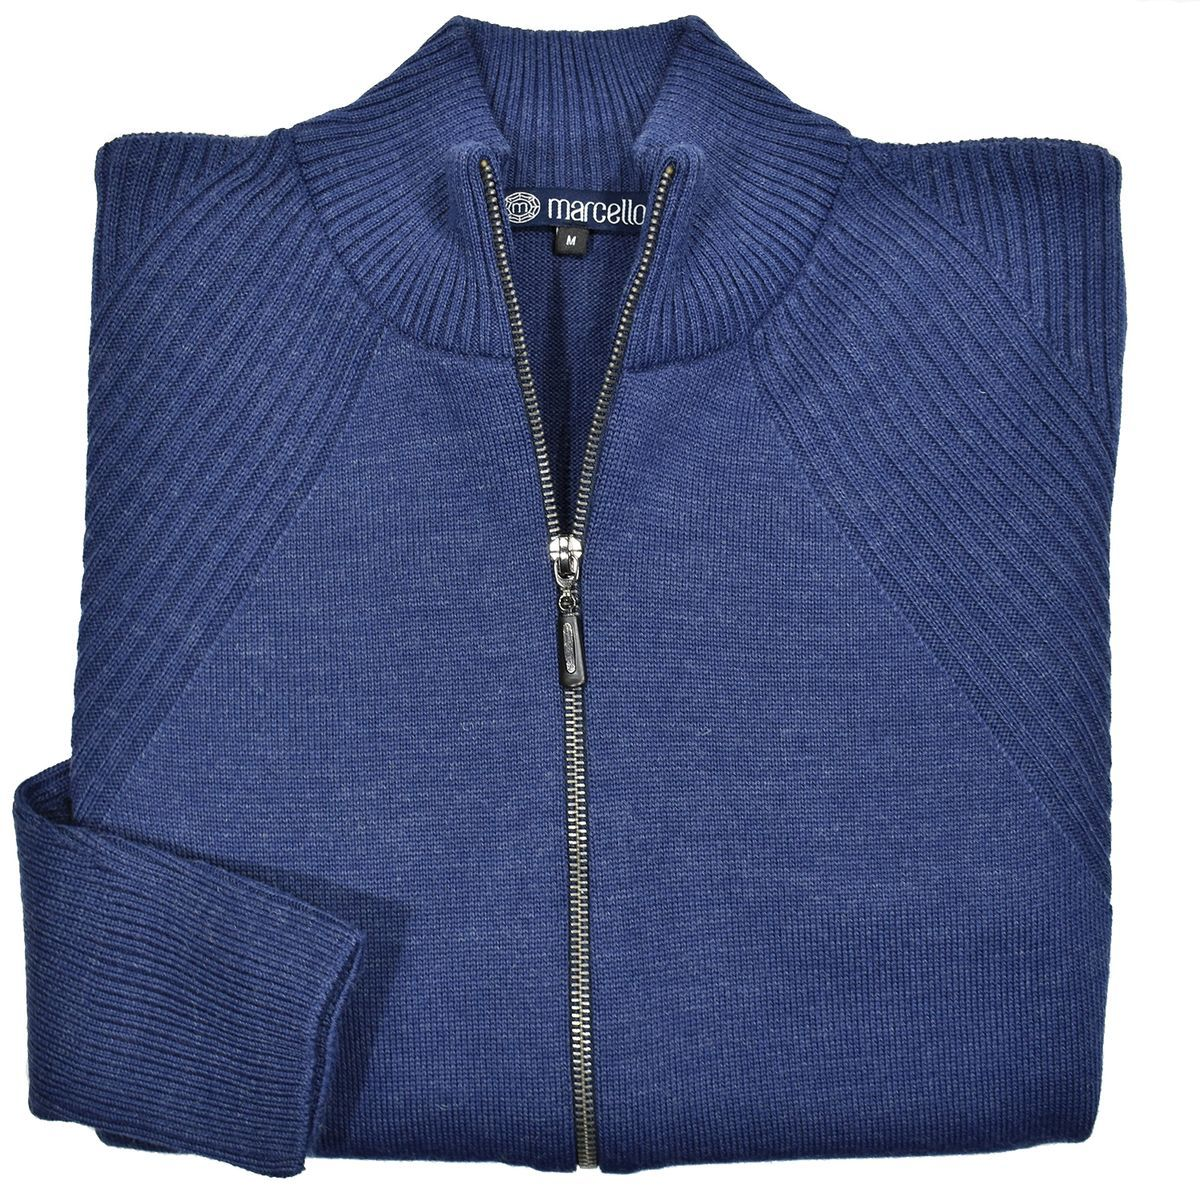 741 Denim Jacquard Zip Cardigan - Marcello Sport